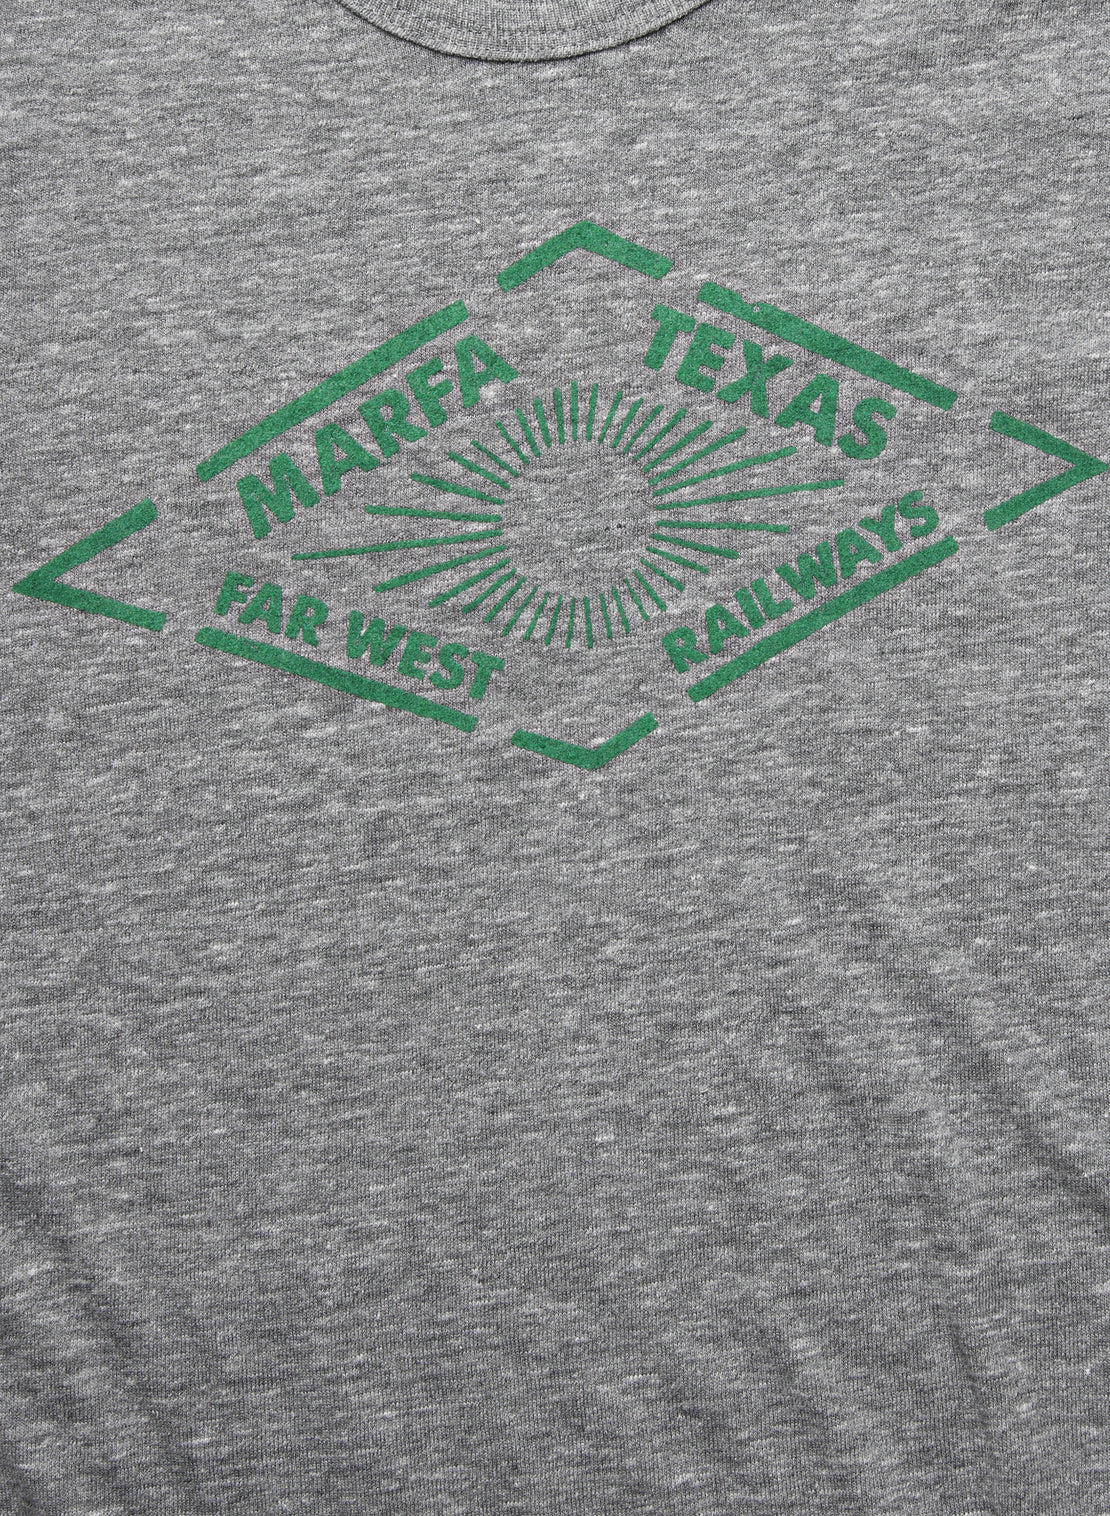 Graphic Tee - Marfa Rail - Alchemy Design - STAG Provisions - Tops - Graphic Tee